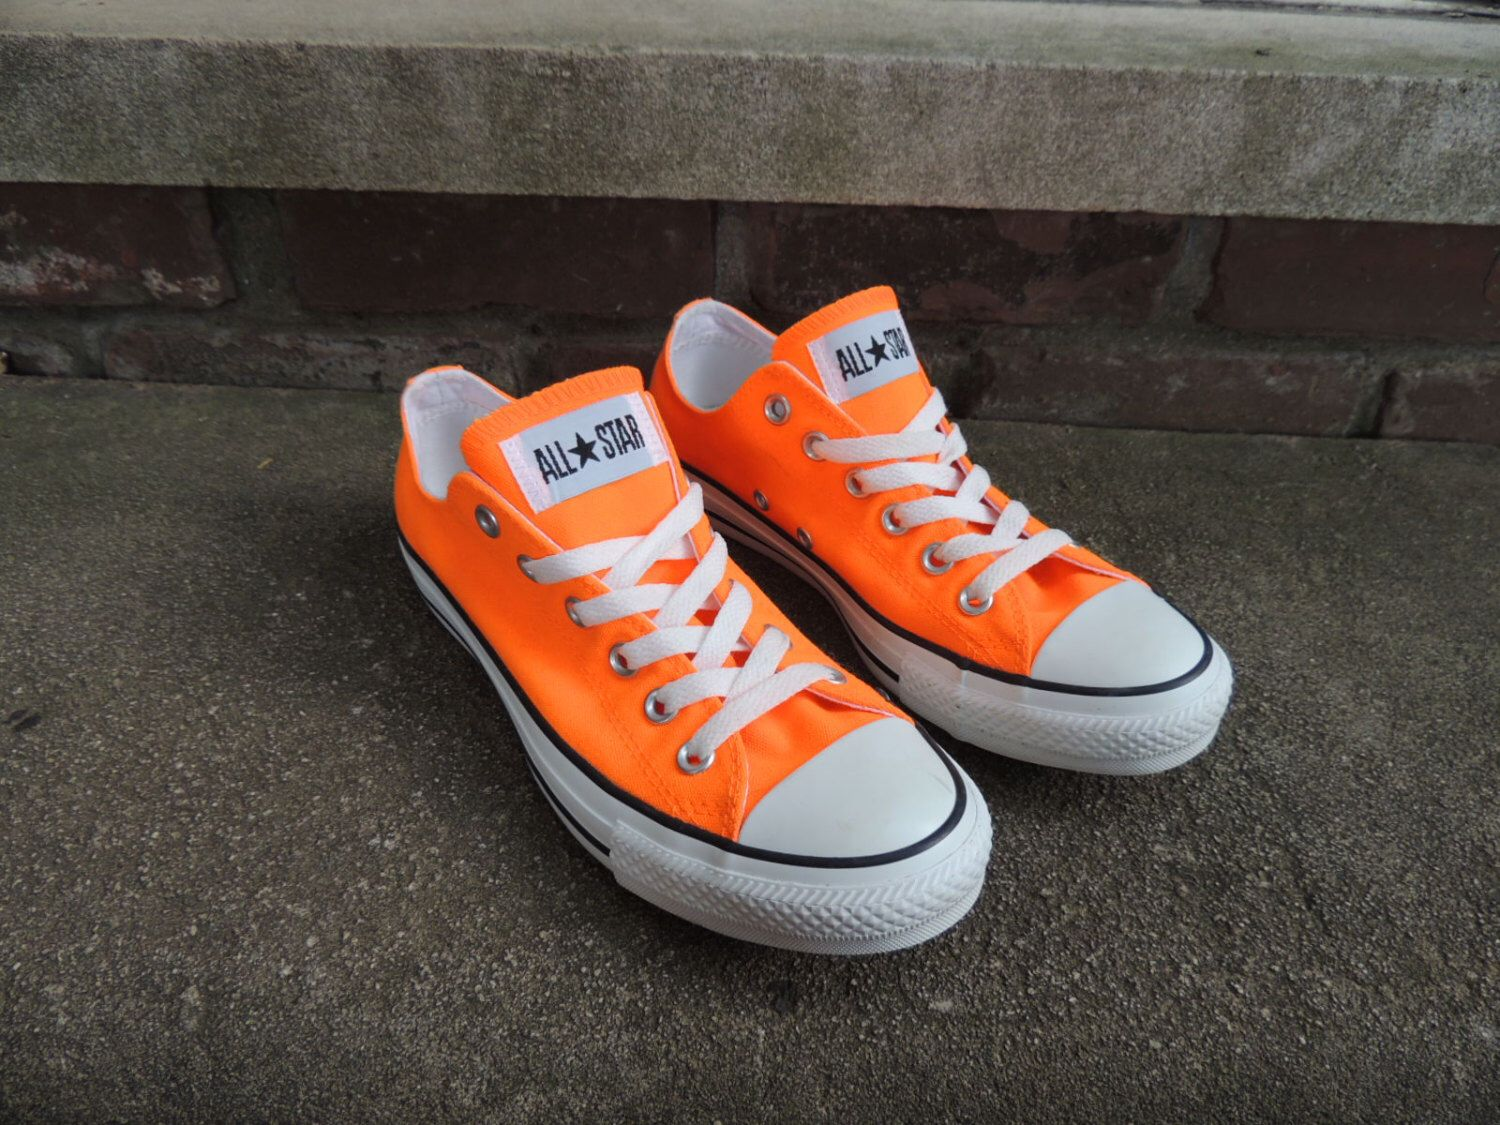 womens orange converse sneakers